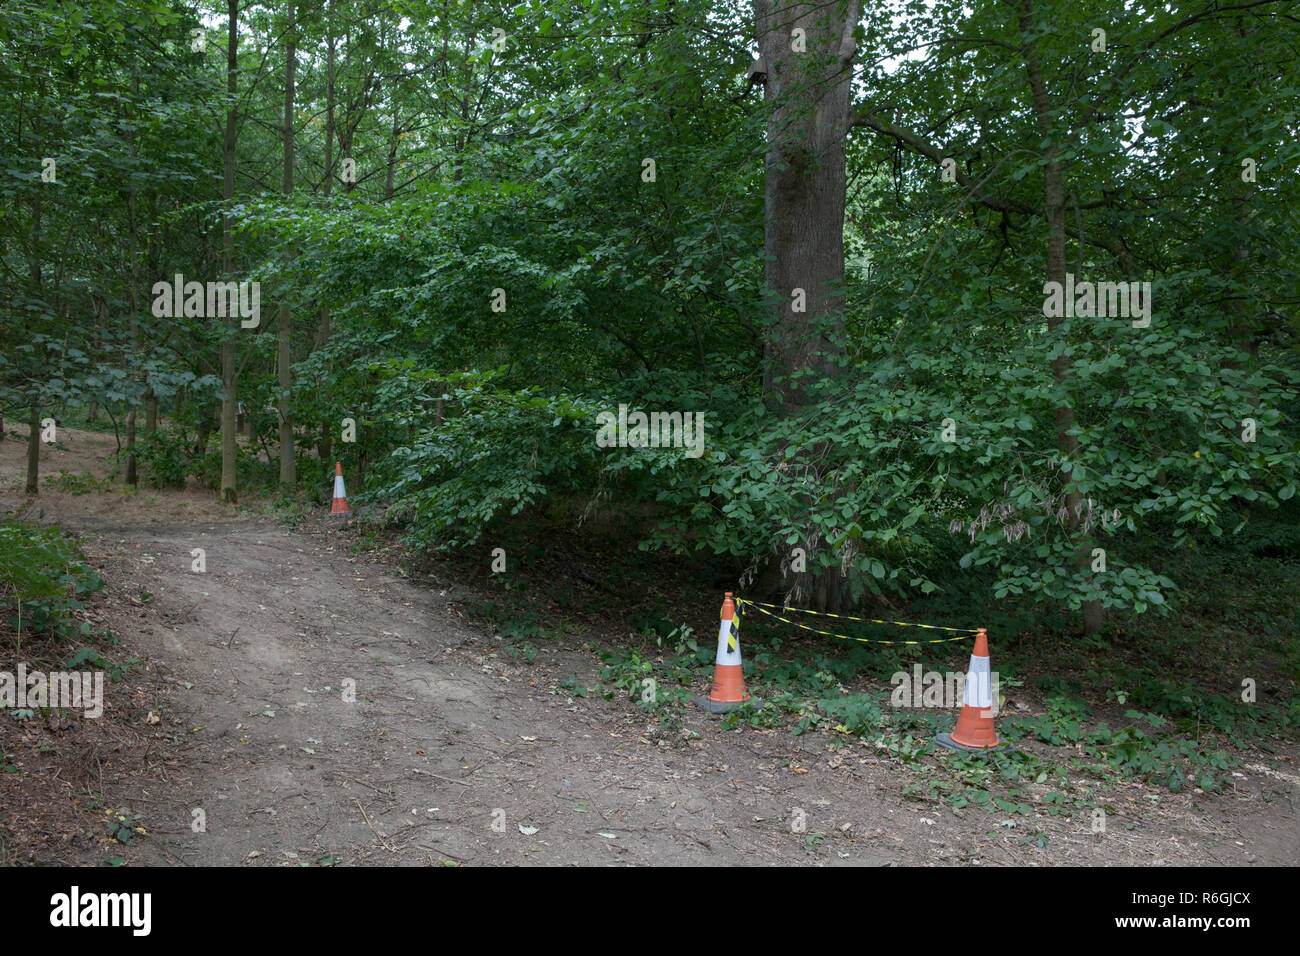 A section of woodland taped off for health and safety reasons in South Yorkshire, England - Stock Image